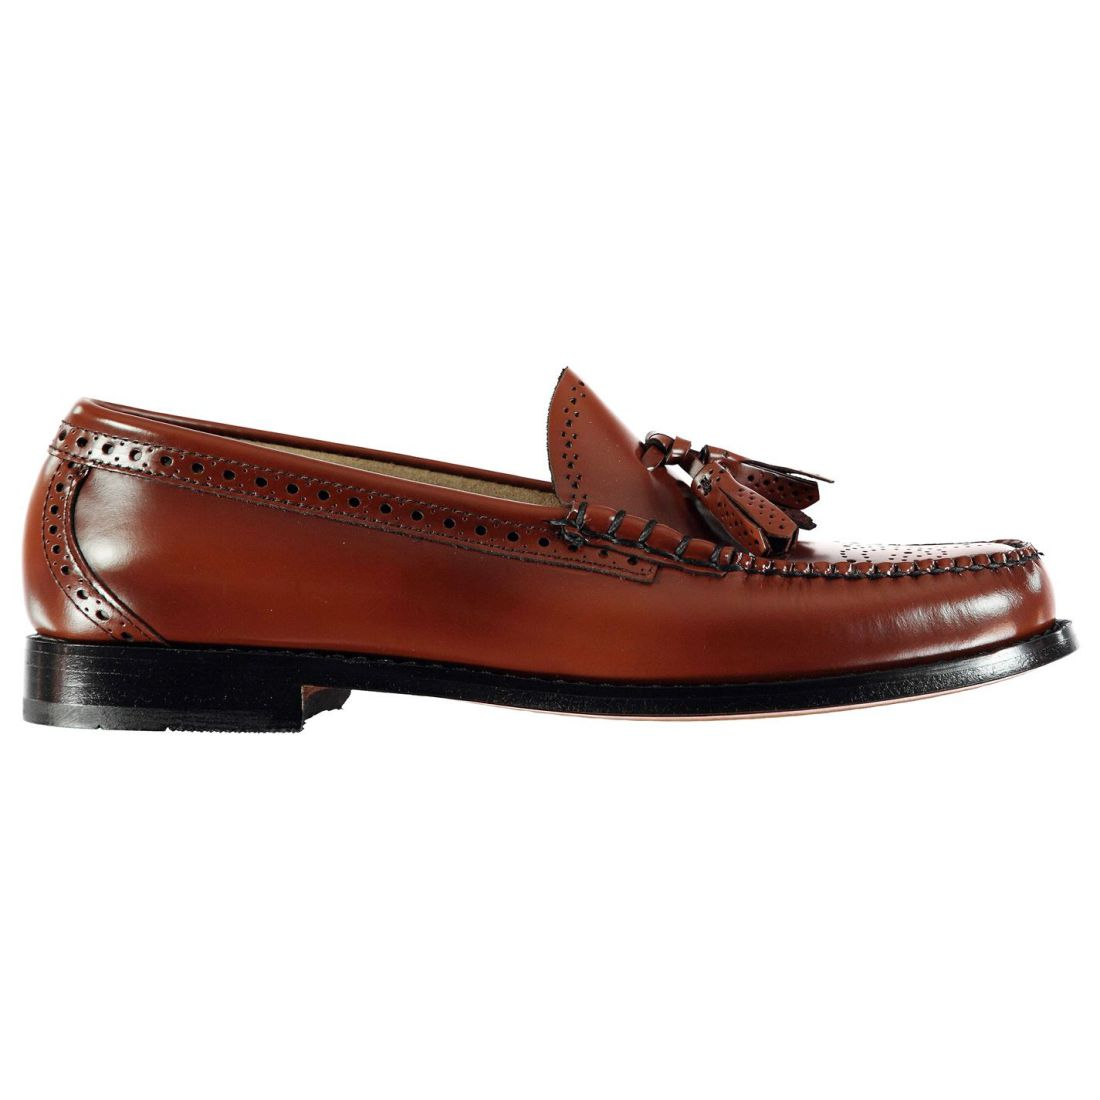 Image is loading Mens-Bass-Weejuns-Larkin-Brogue-Brogues-Slip-On- 8bbcf1155